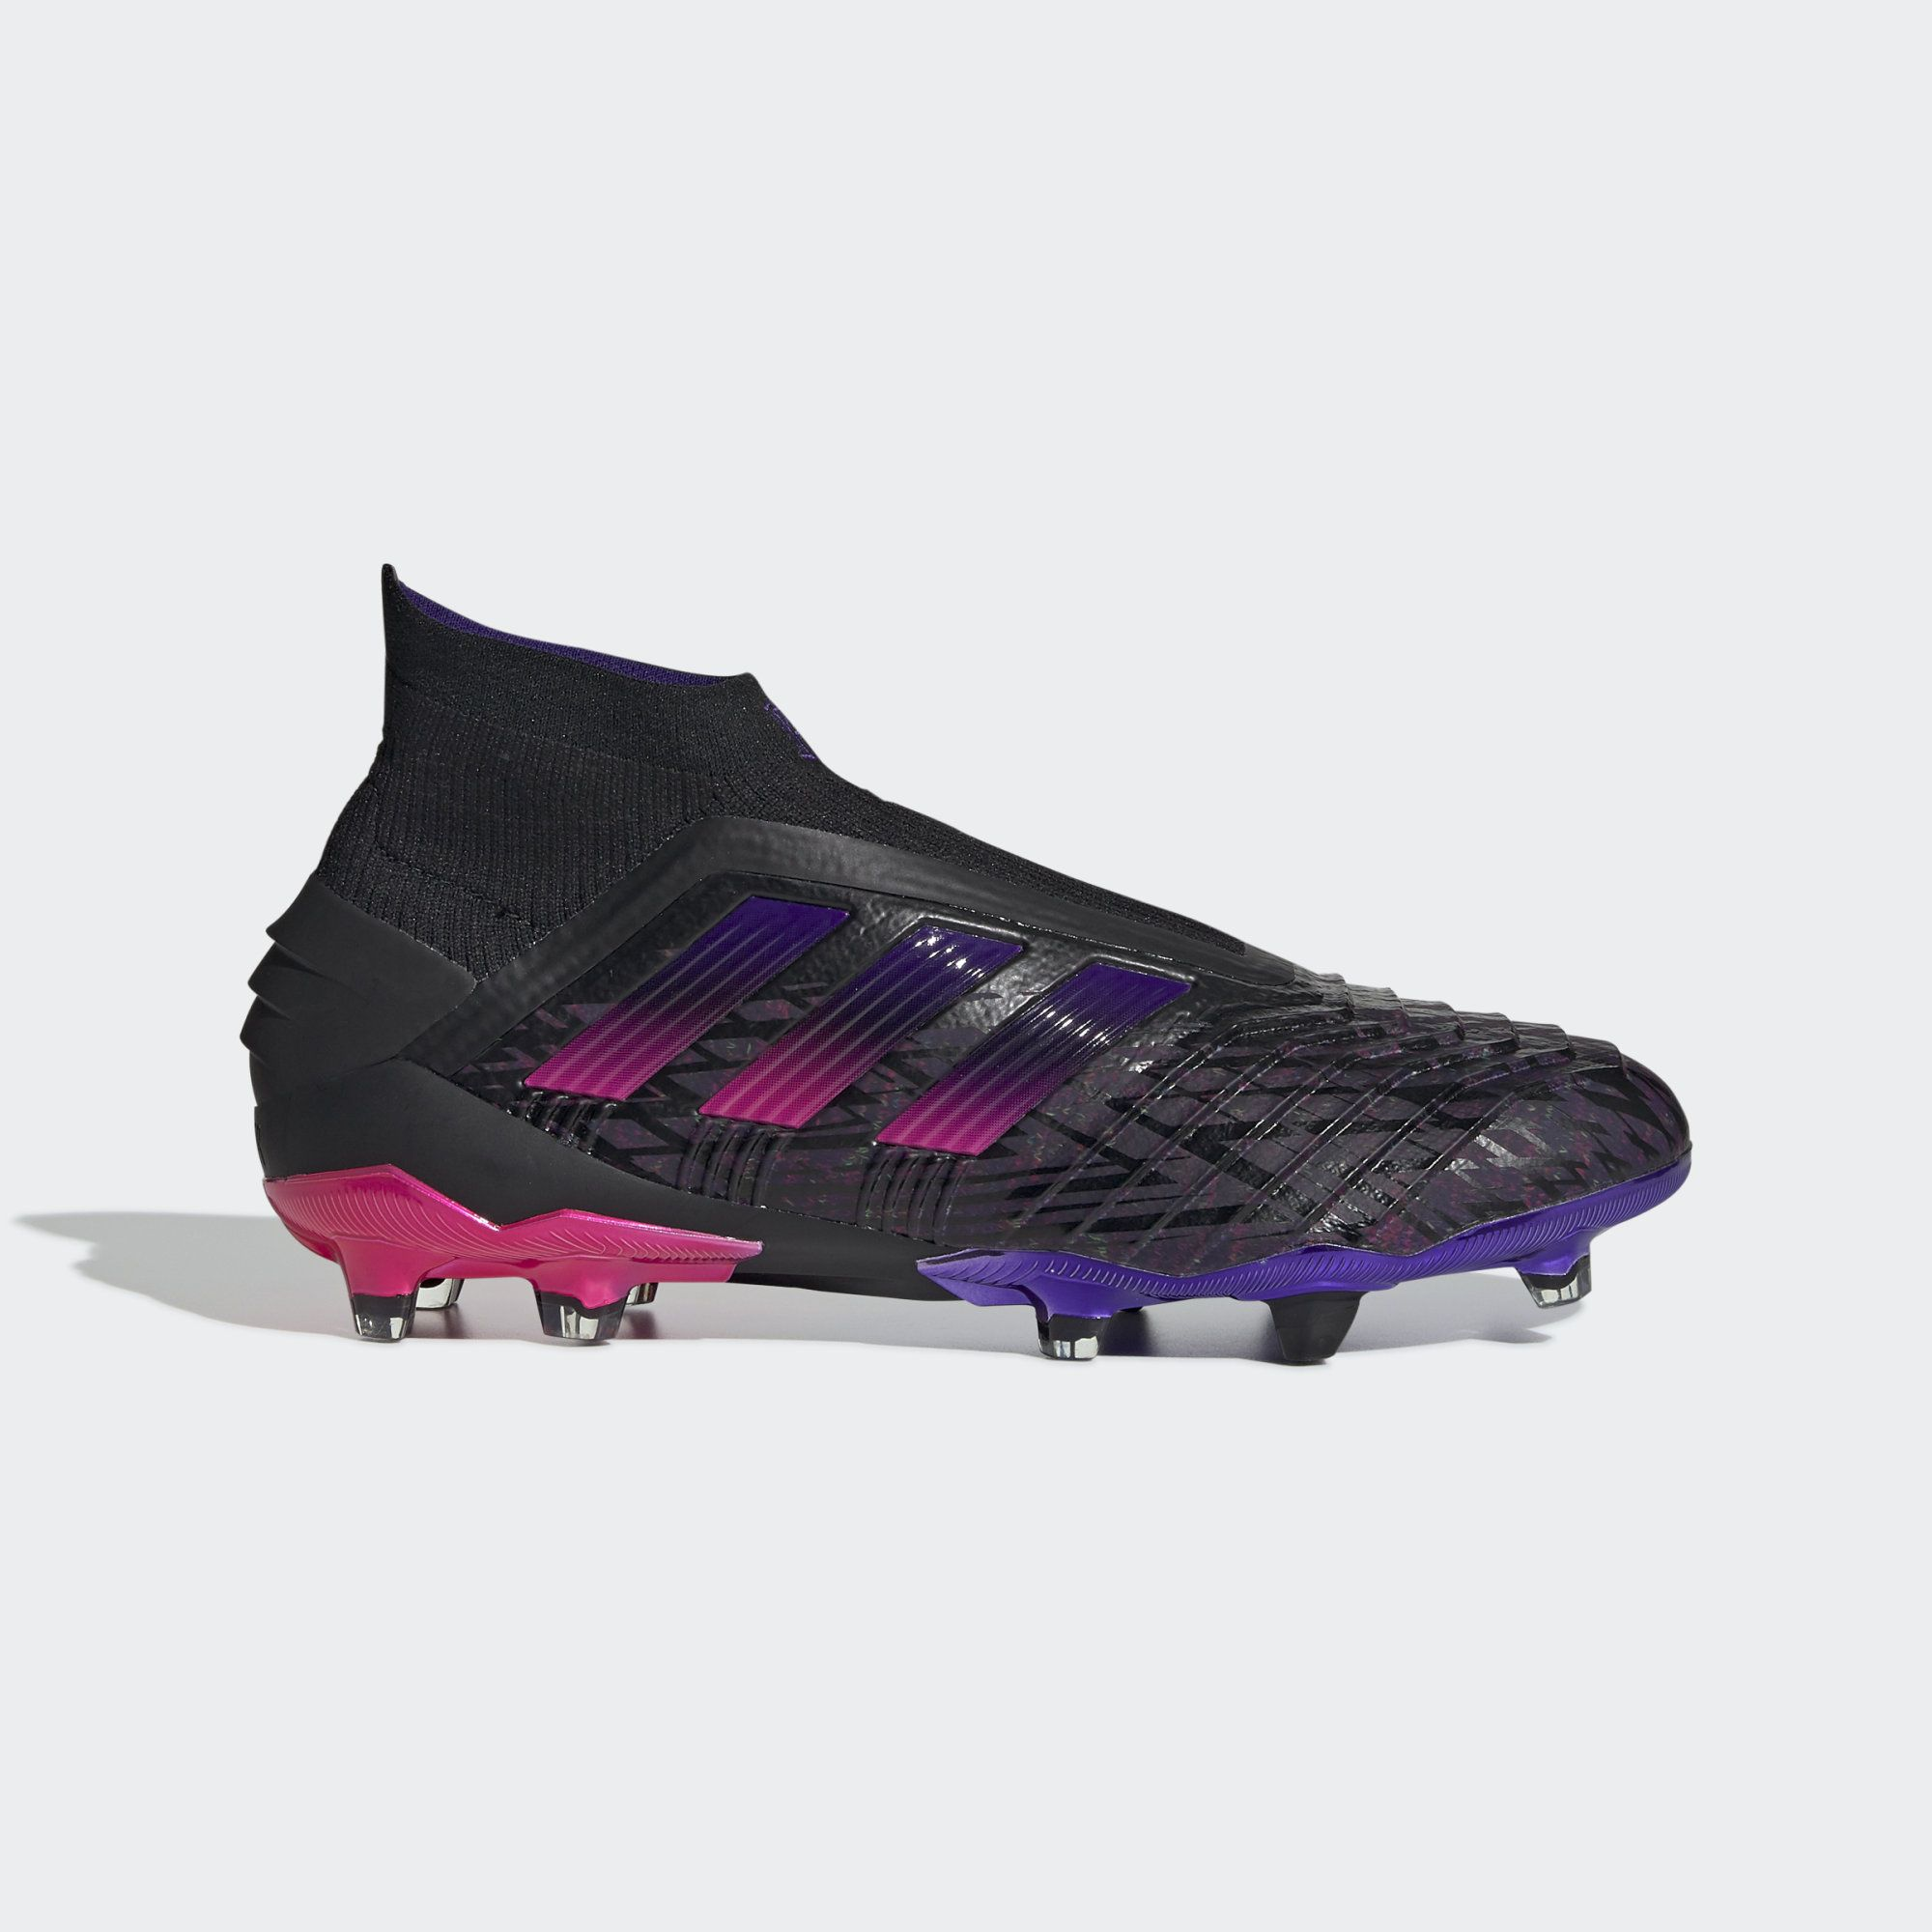 Adidas Predator 19 Paul Pogba Fg Core Black Core Black Shock Pink Pogba Adidasfootball Cleats Soccer Cleats Adidas Paul Pogba